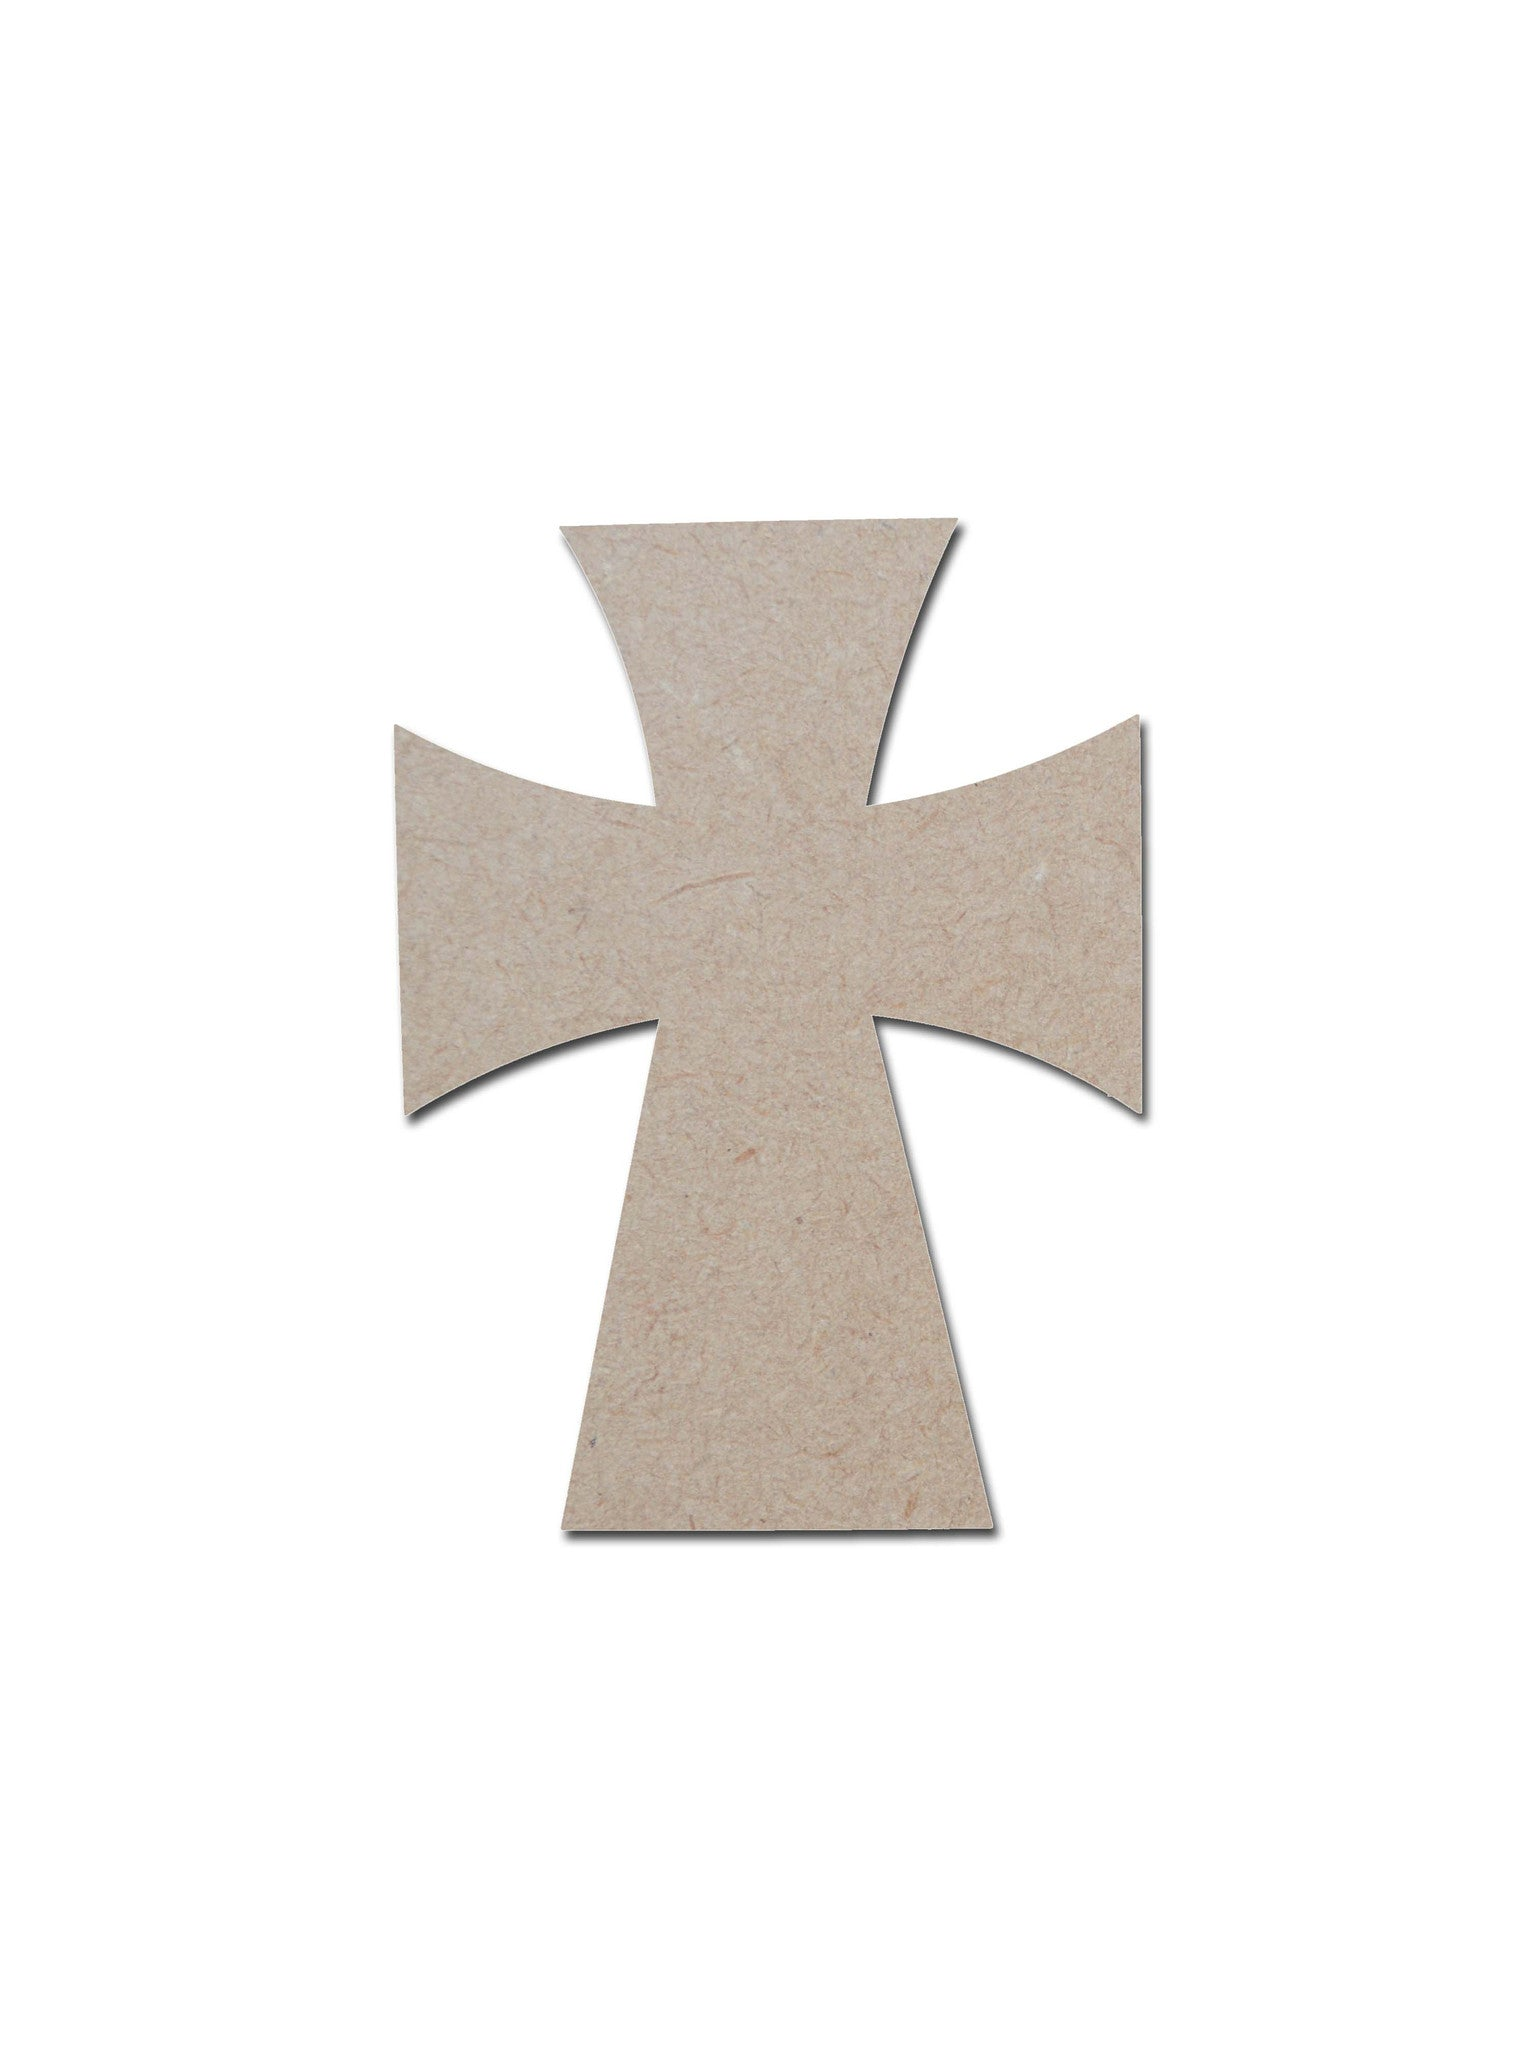 Unfinished wooden crosses for crafts - Unfinished Wood Cross Mdf Craft Crosses Variety Of Sizes C125